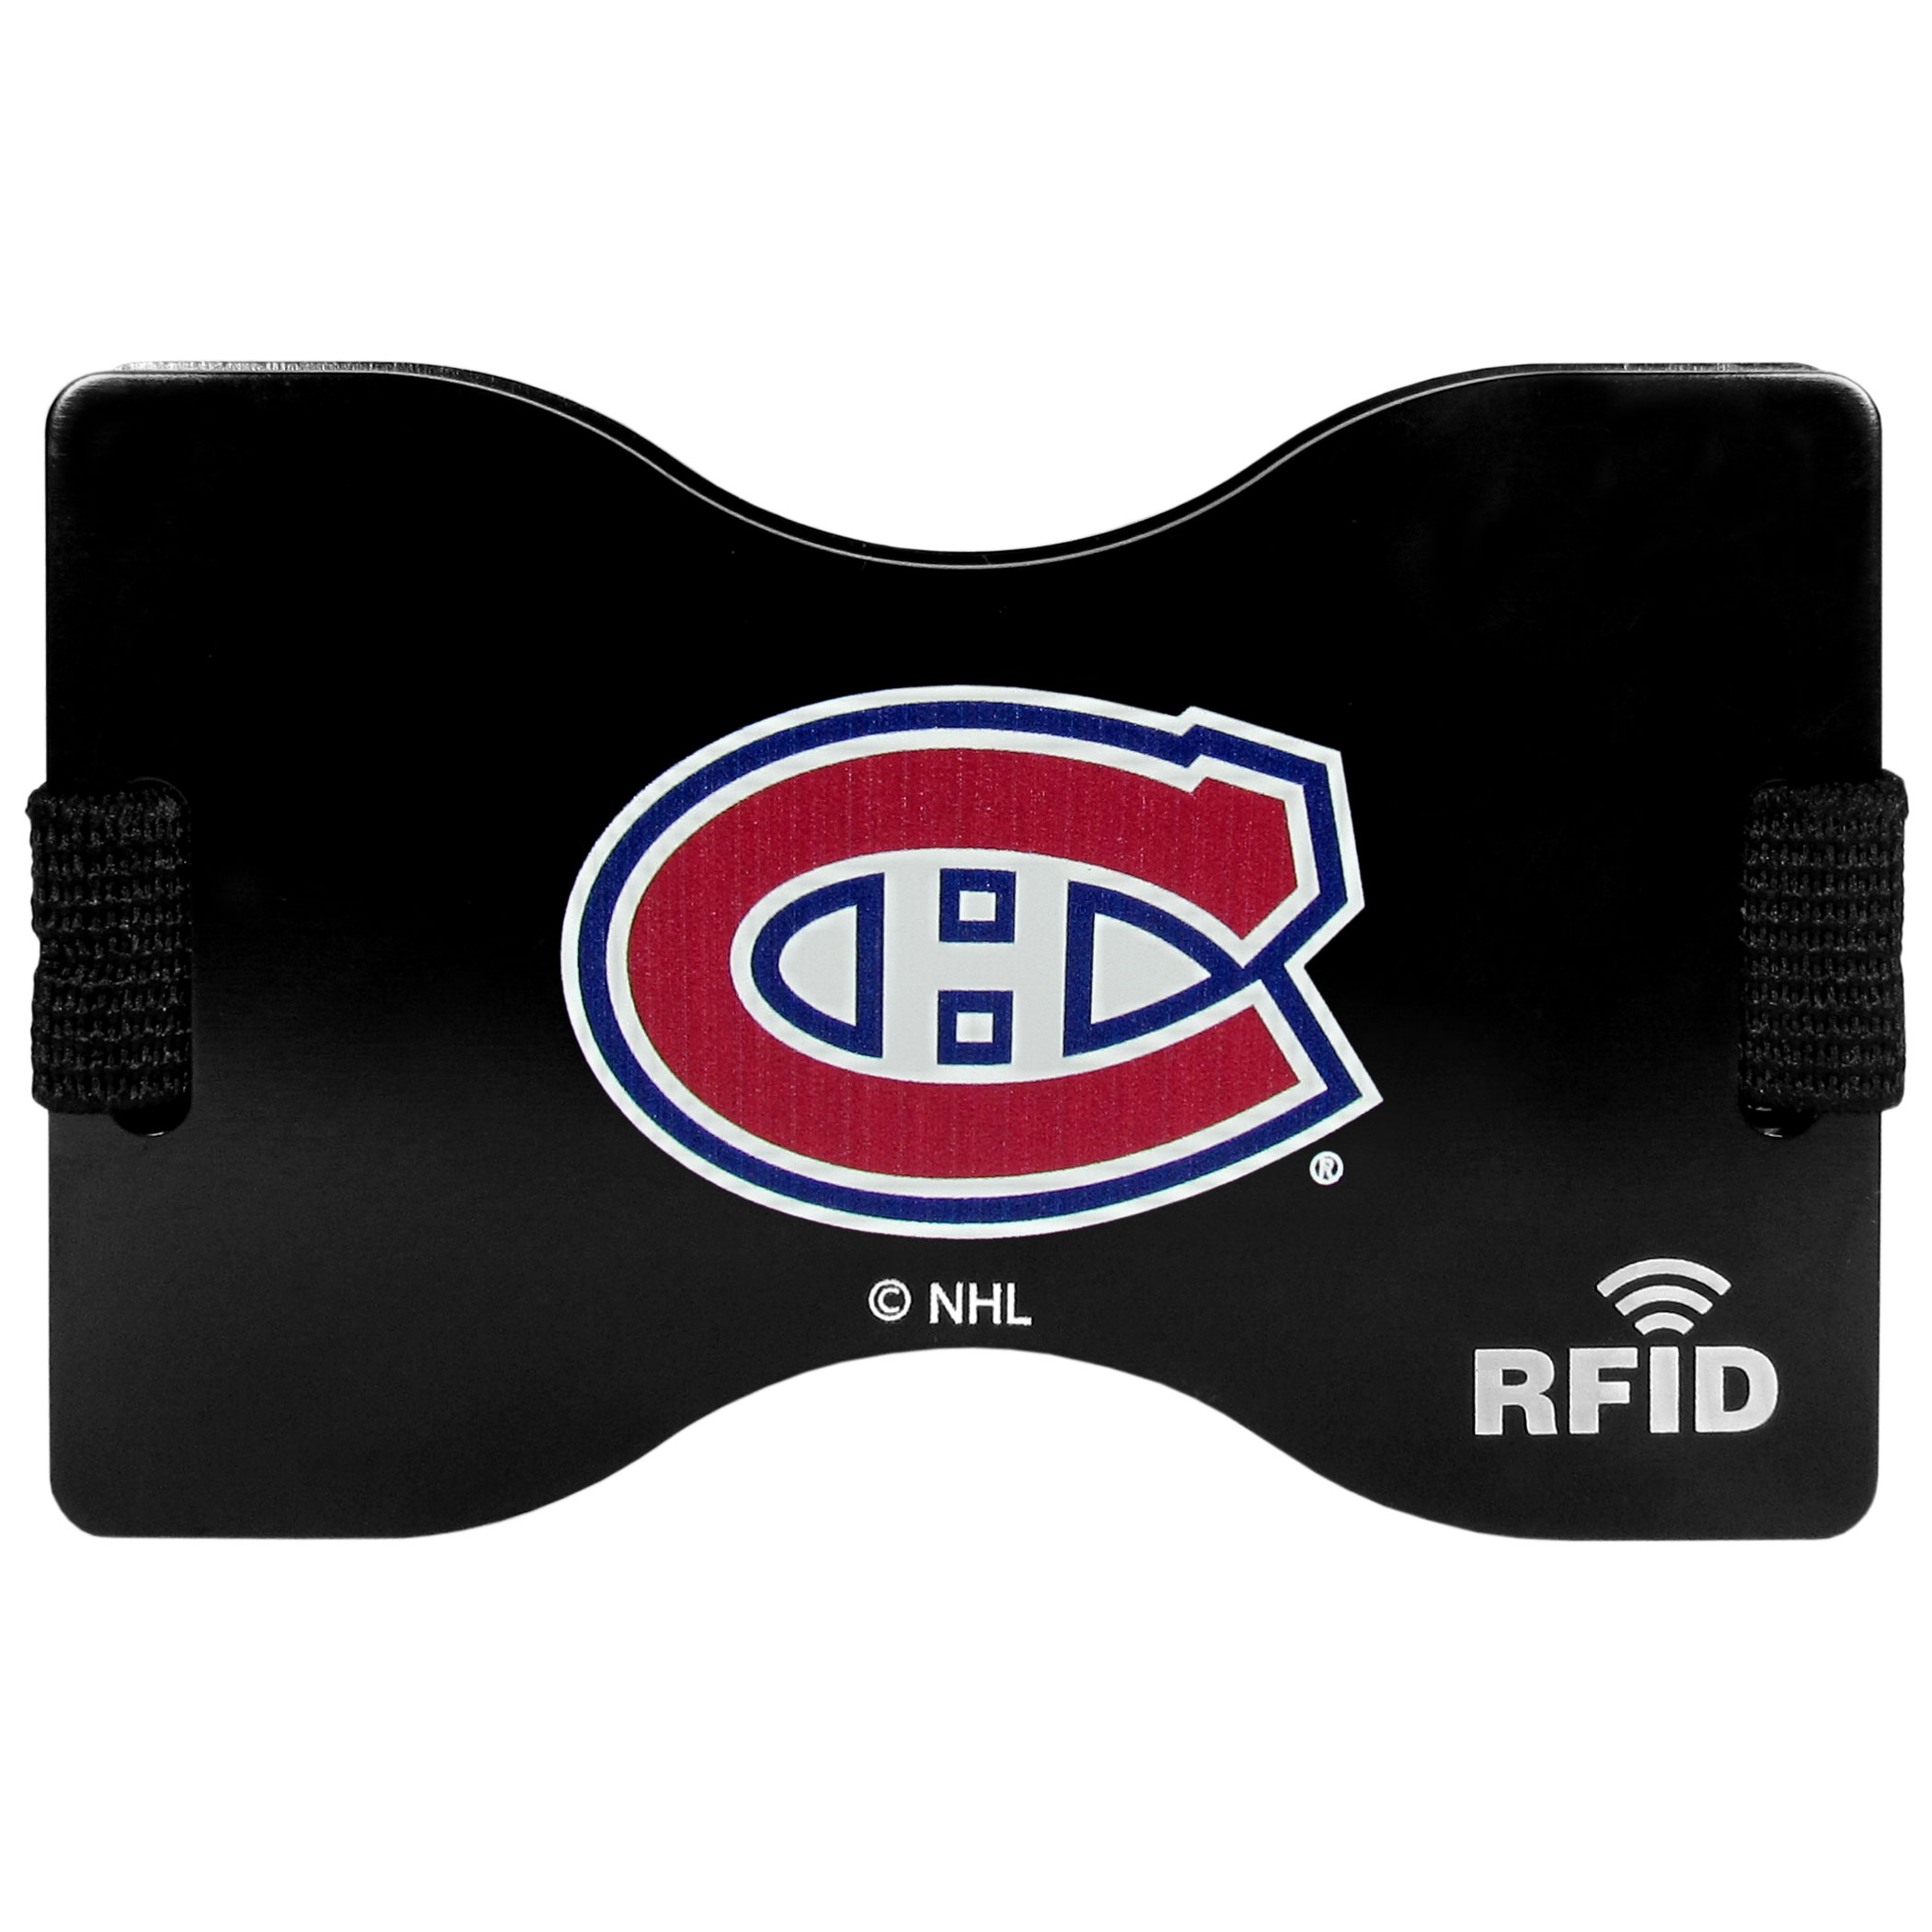 Montreal Canadiens® RFID Wallet